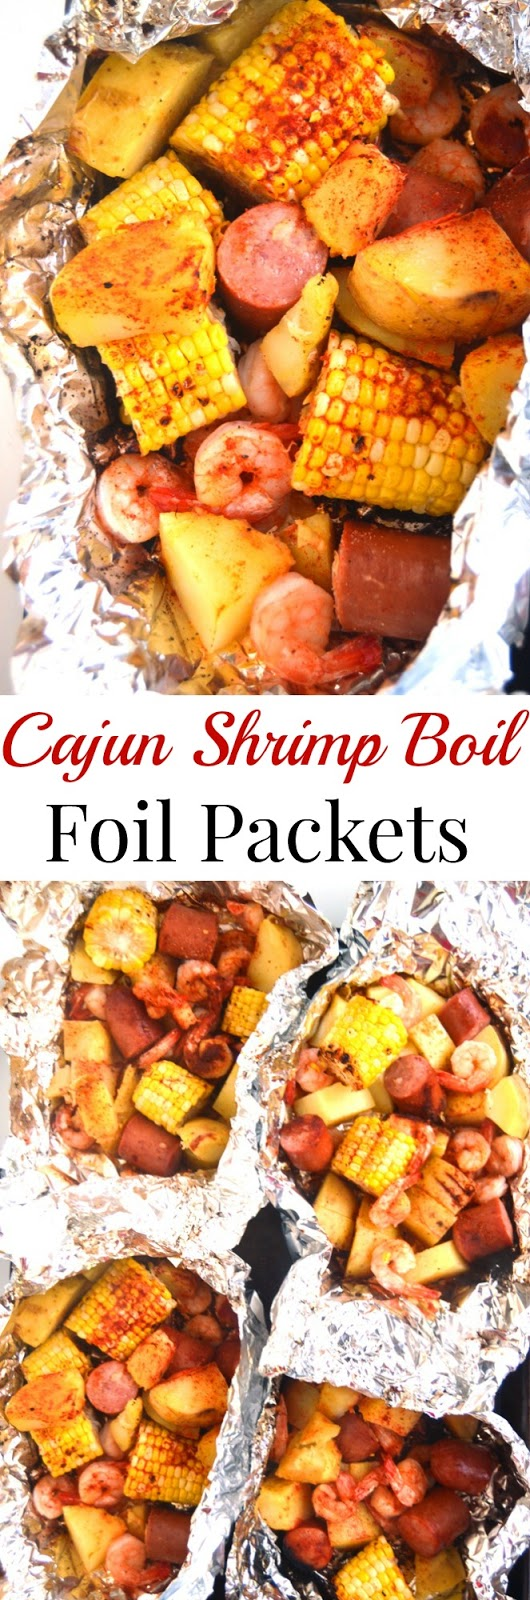 Cajun Shrimp Boil Foil Packets take just 20 minutes to make and are full of cajun flavor with shrimp, sausage, corn and potatoes! They are made on the grill in an aluminum foil packet for a quick meal. www.nutritionistreviews.com